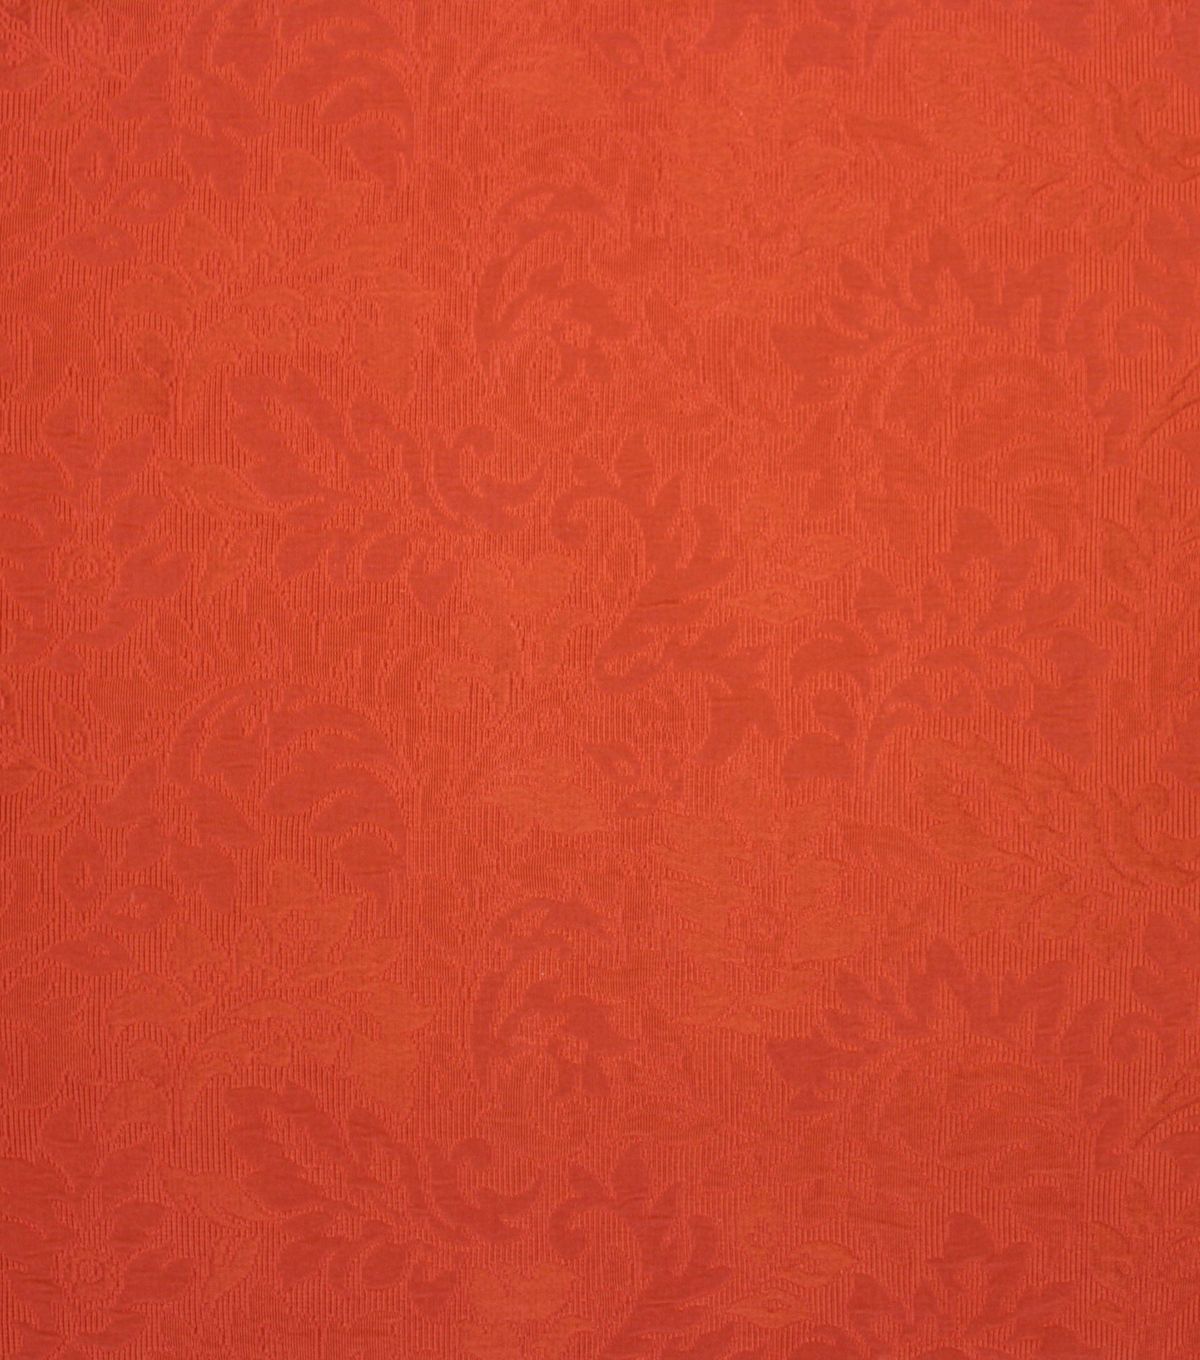 Upholstery Fabric-Barrow M6682-5460 Claret